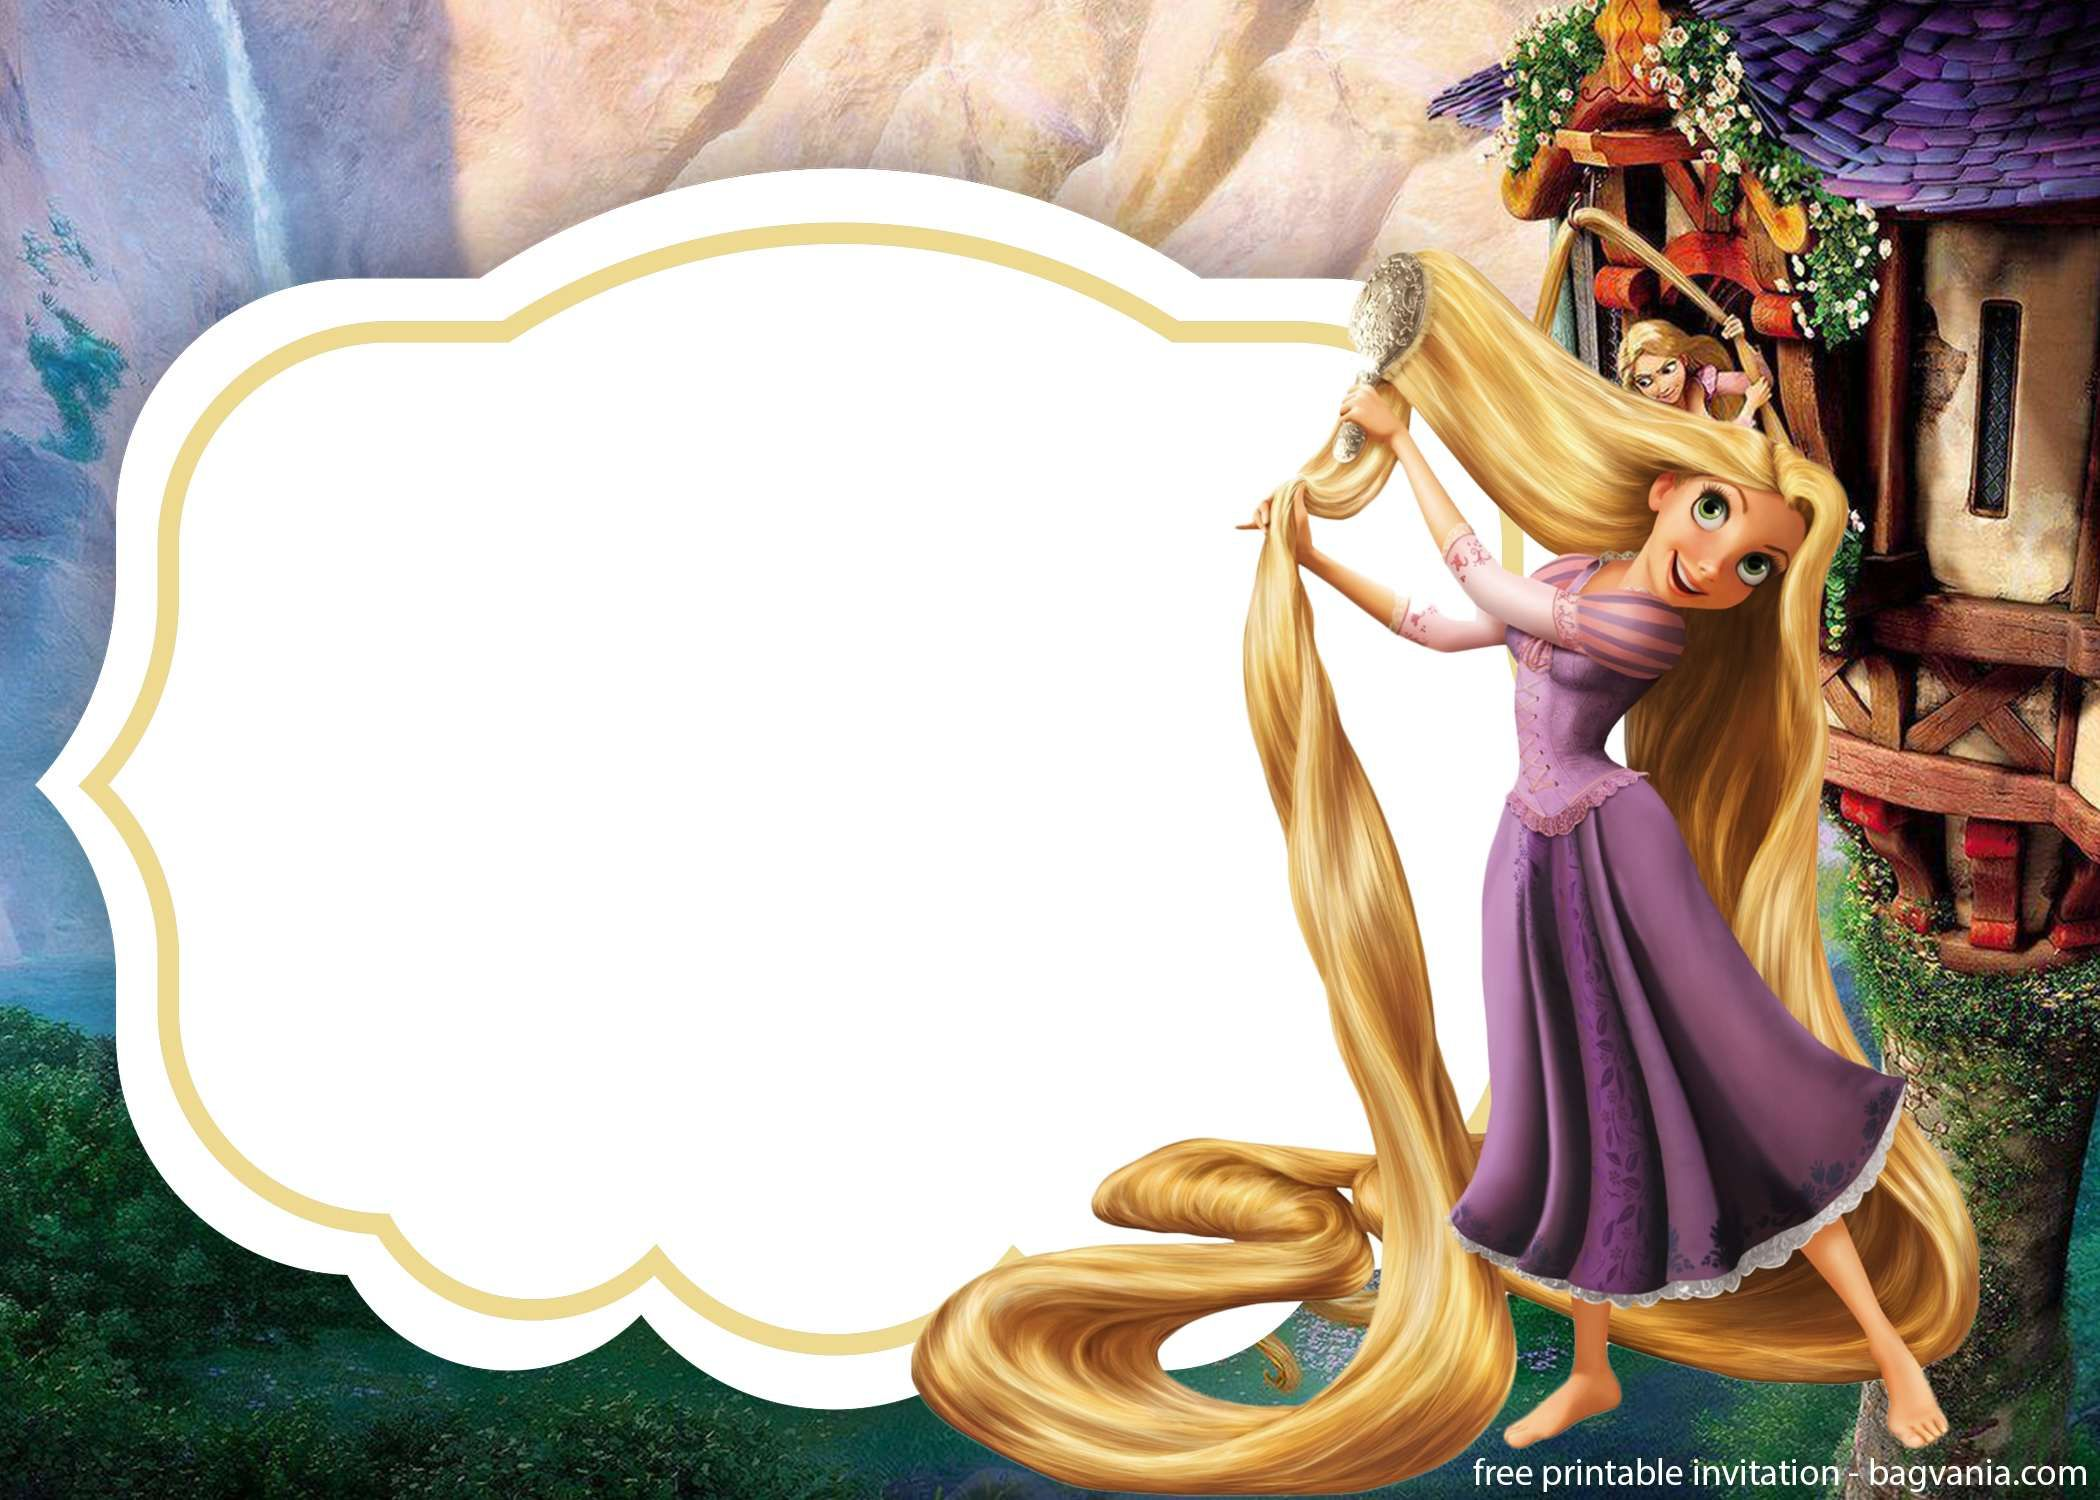 Download Rapunzel Invitations Template For Free Bagvania